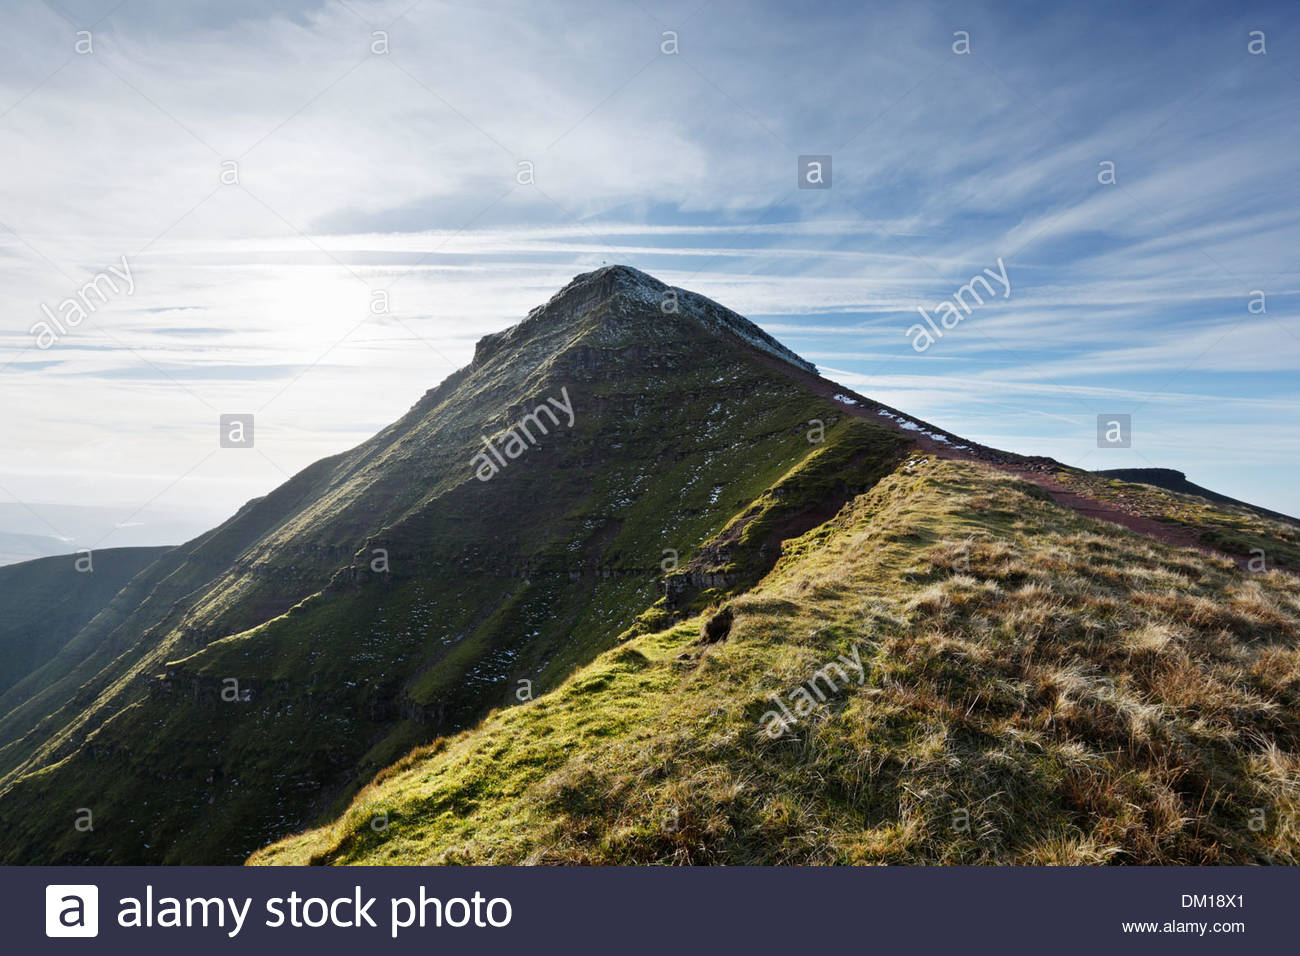 Pen-y-Fan Brecon Beacons National Park, Pen y Fan Summit. Highest mountain in Southern Britain. Brecon ...